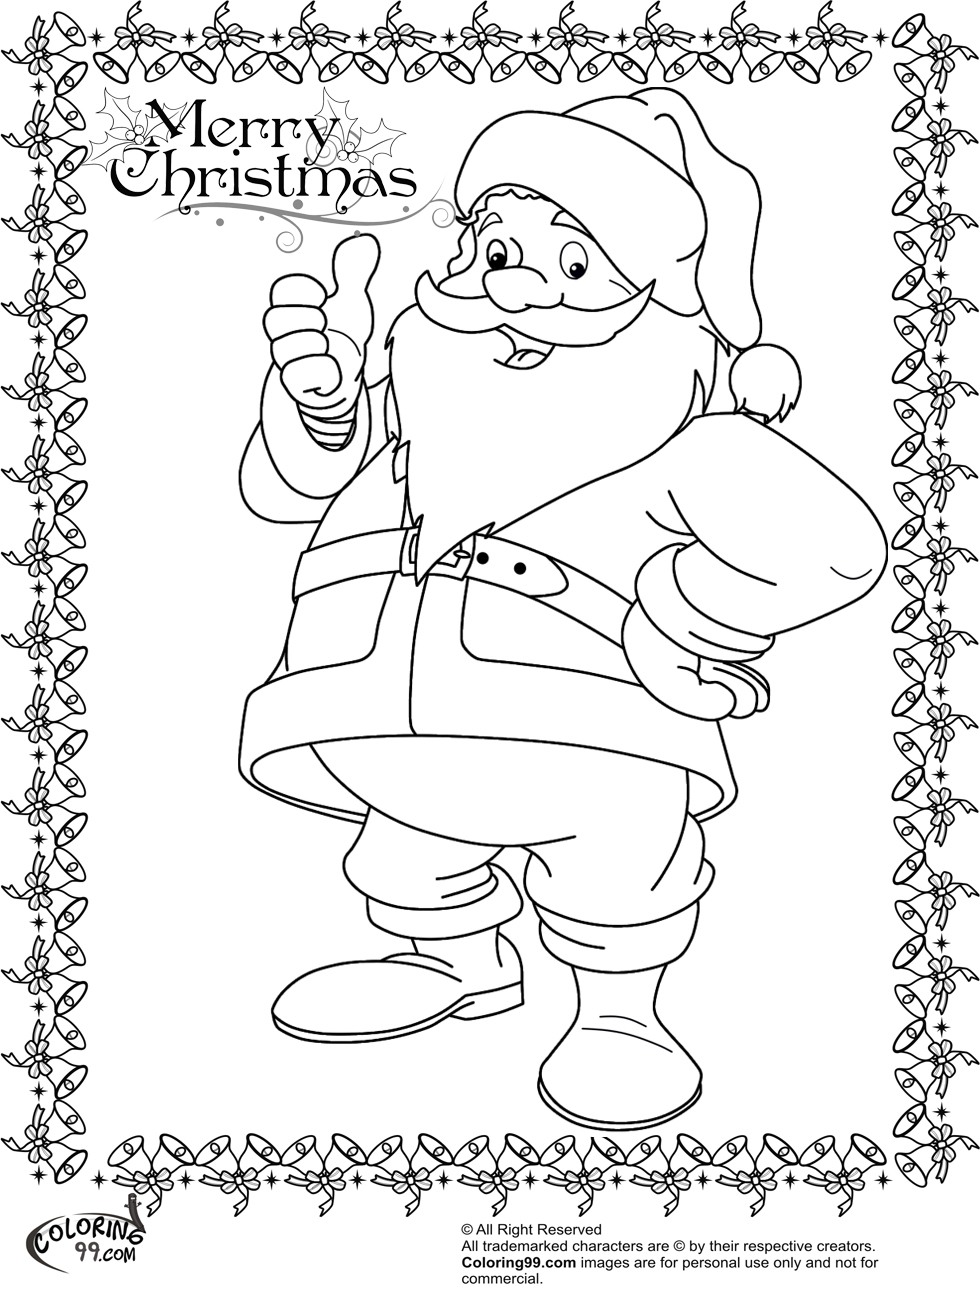 Santa Claus Coloring Pages For Adults With Face Sheets